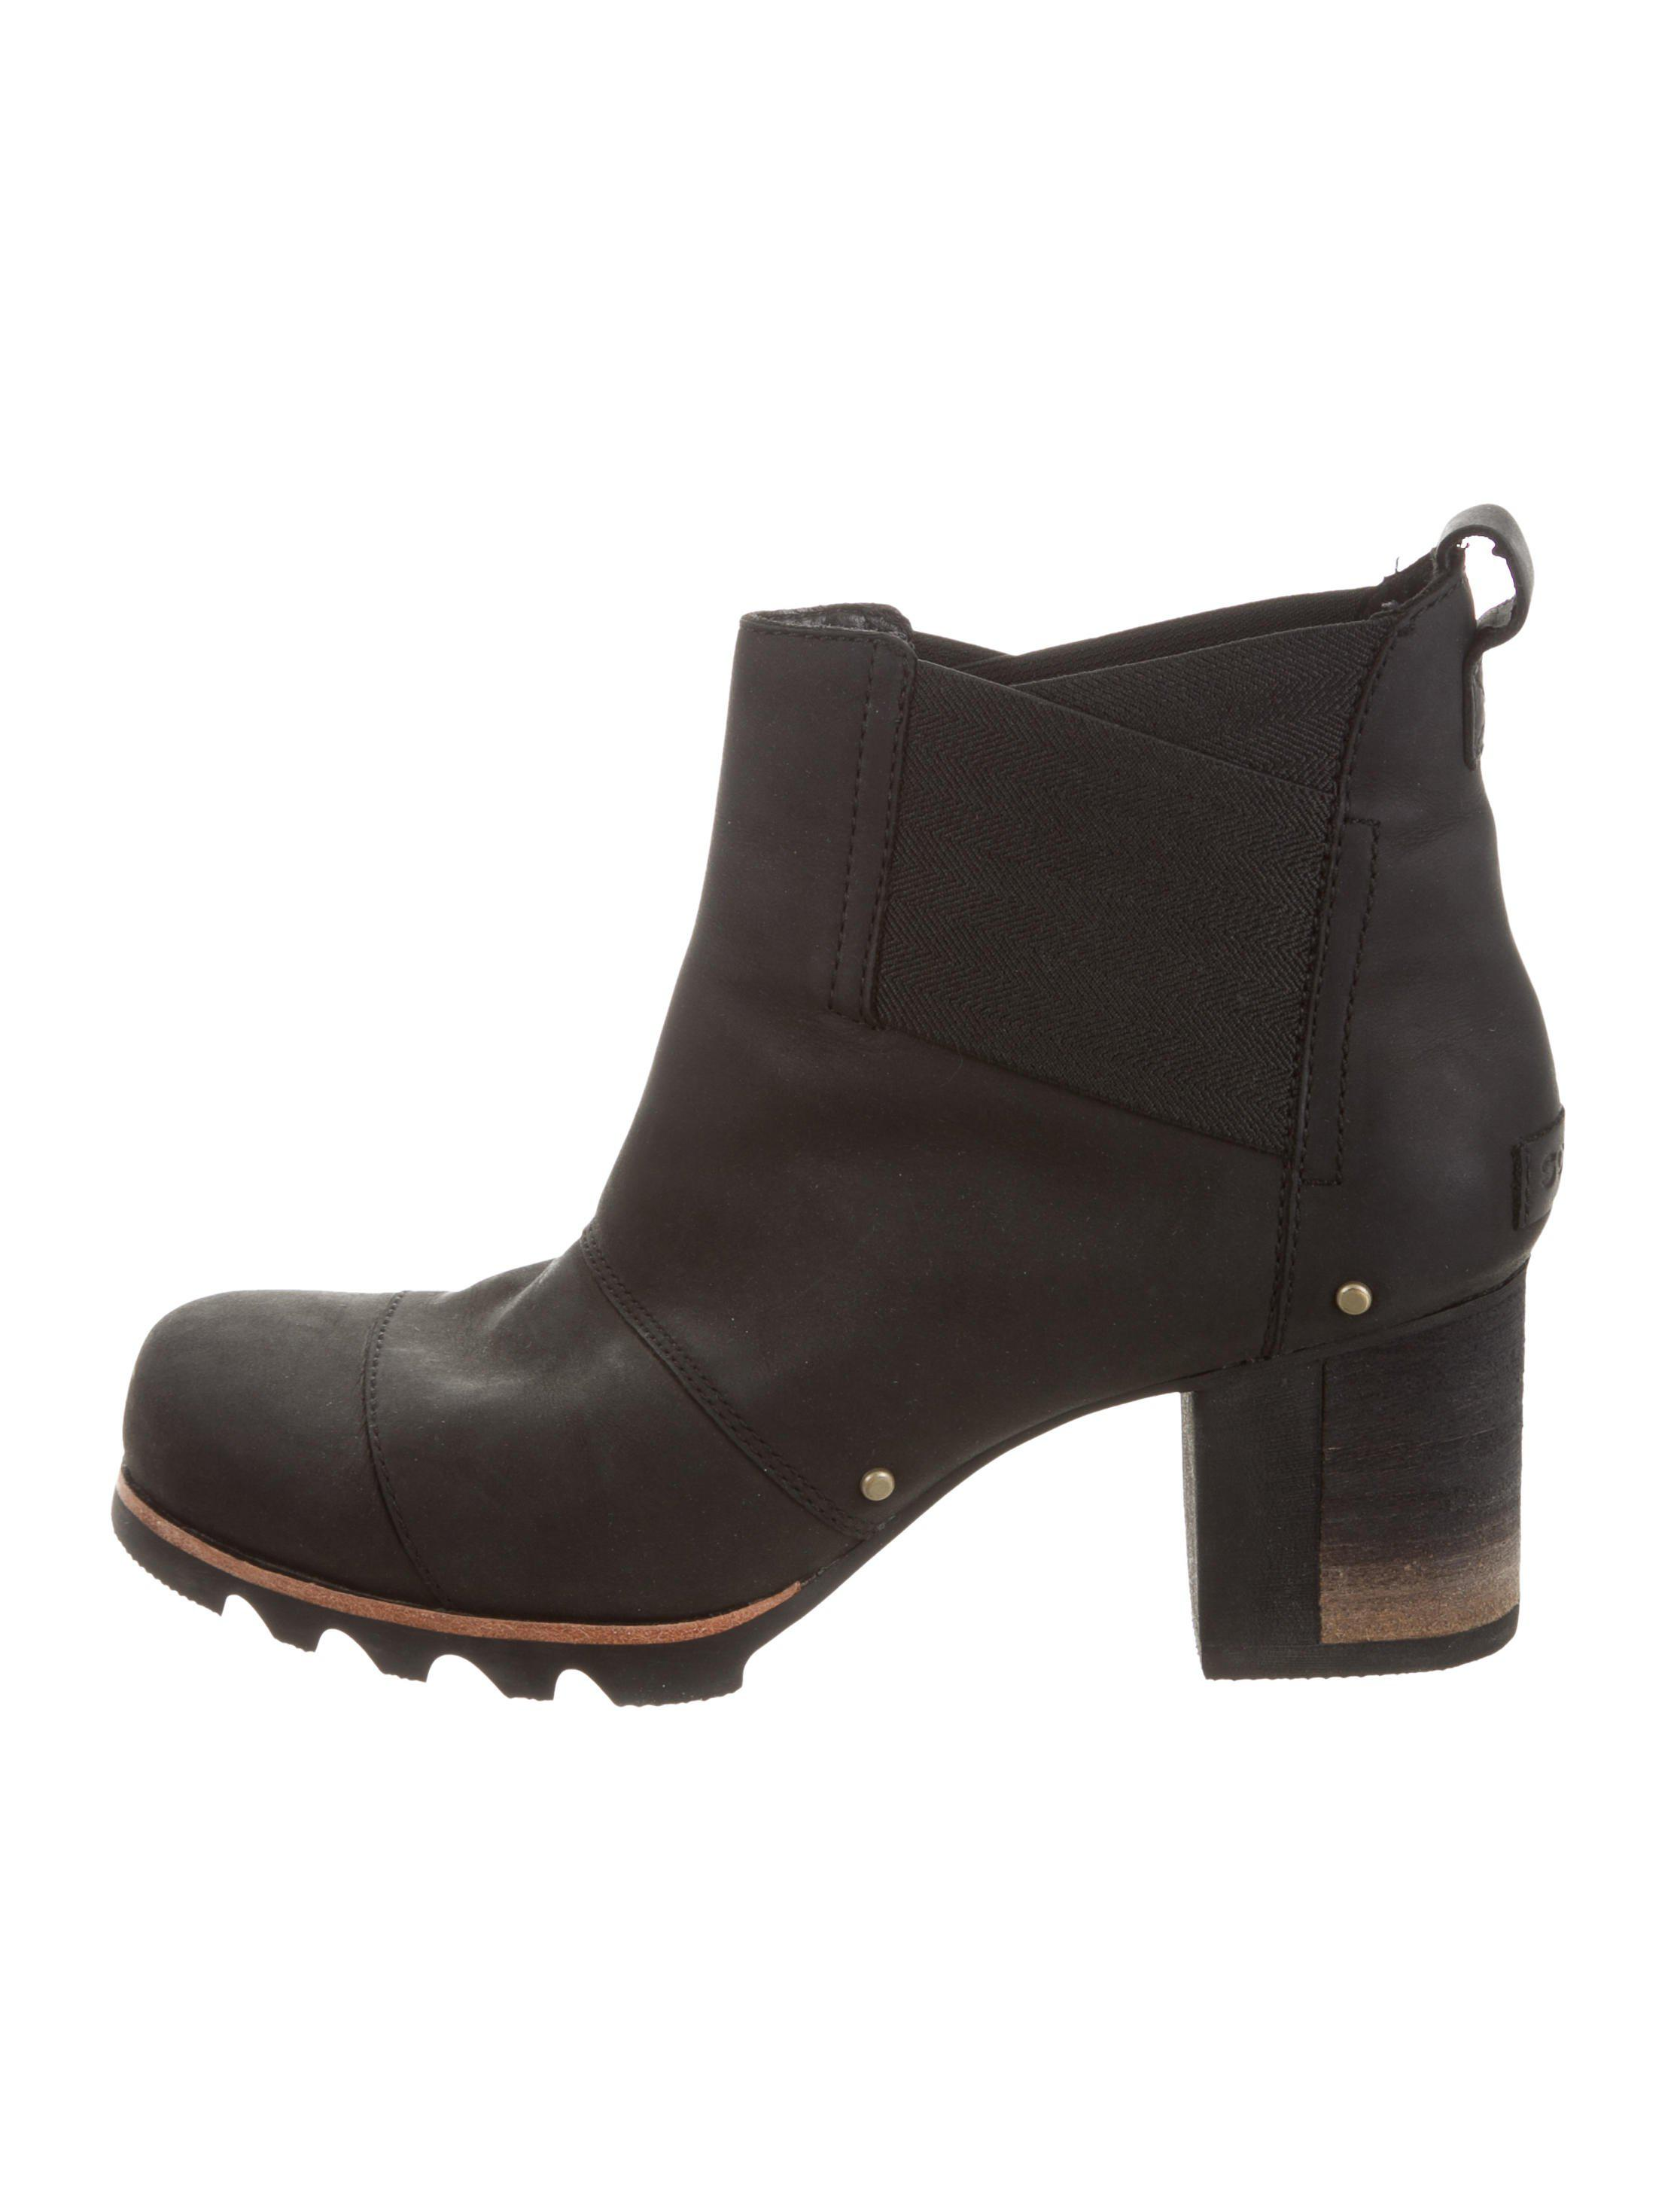 footlocker finishline cheap price discount affordable Sorel Suede Round-Toe Ankle Boots discount purchase huge surprise online clearance great deals 5kaj6nUSUO